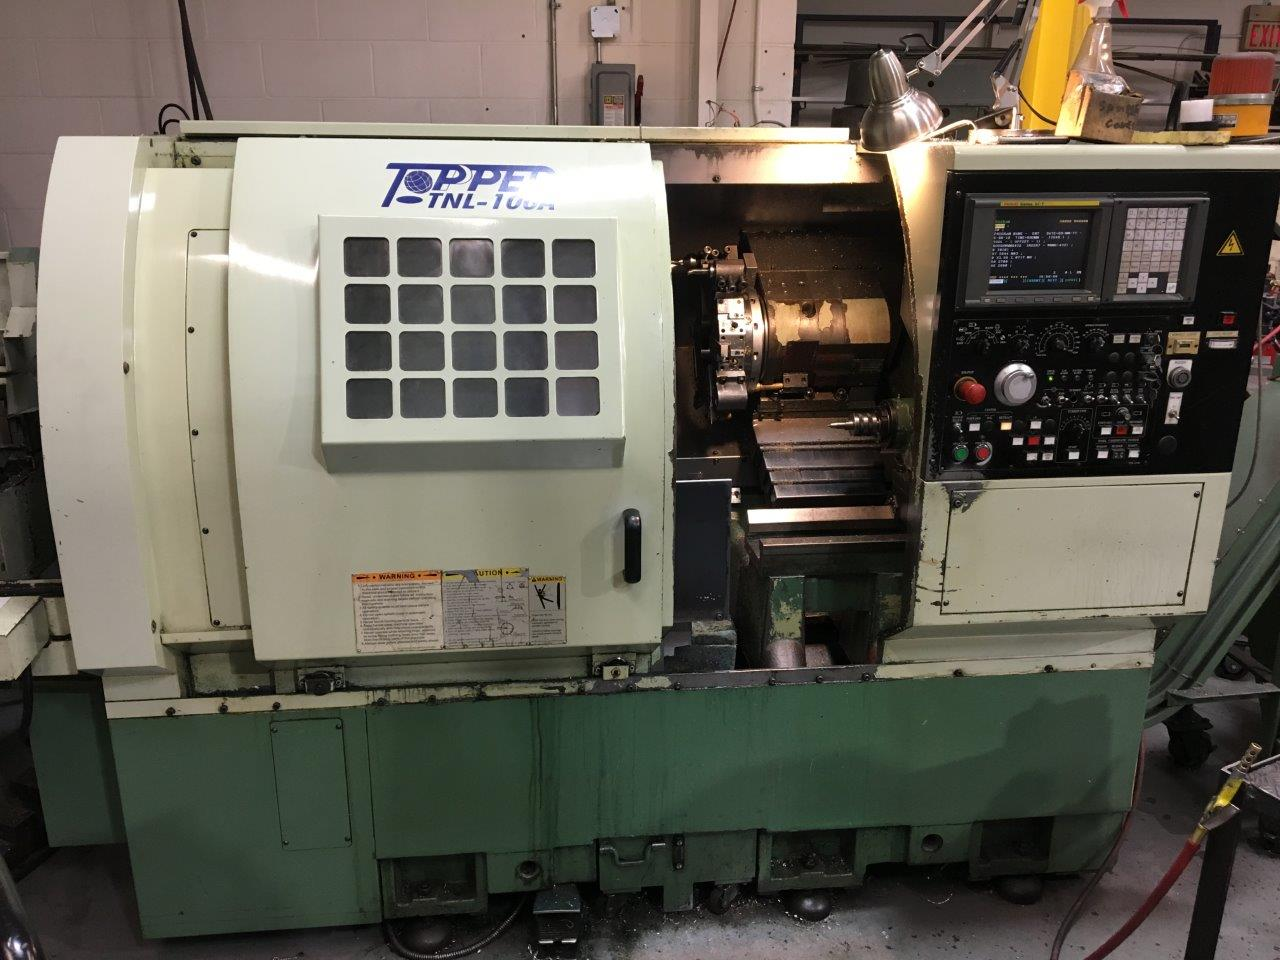 Topper TNL-100A Turning Center